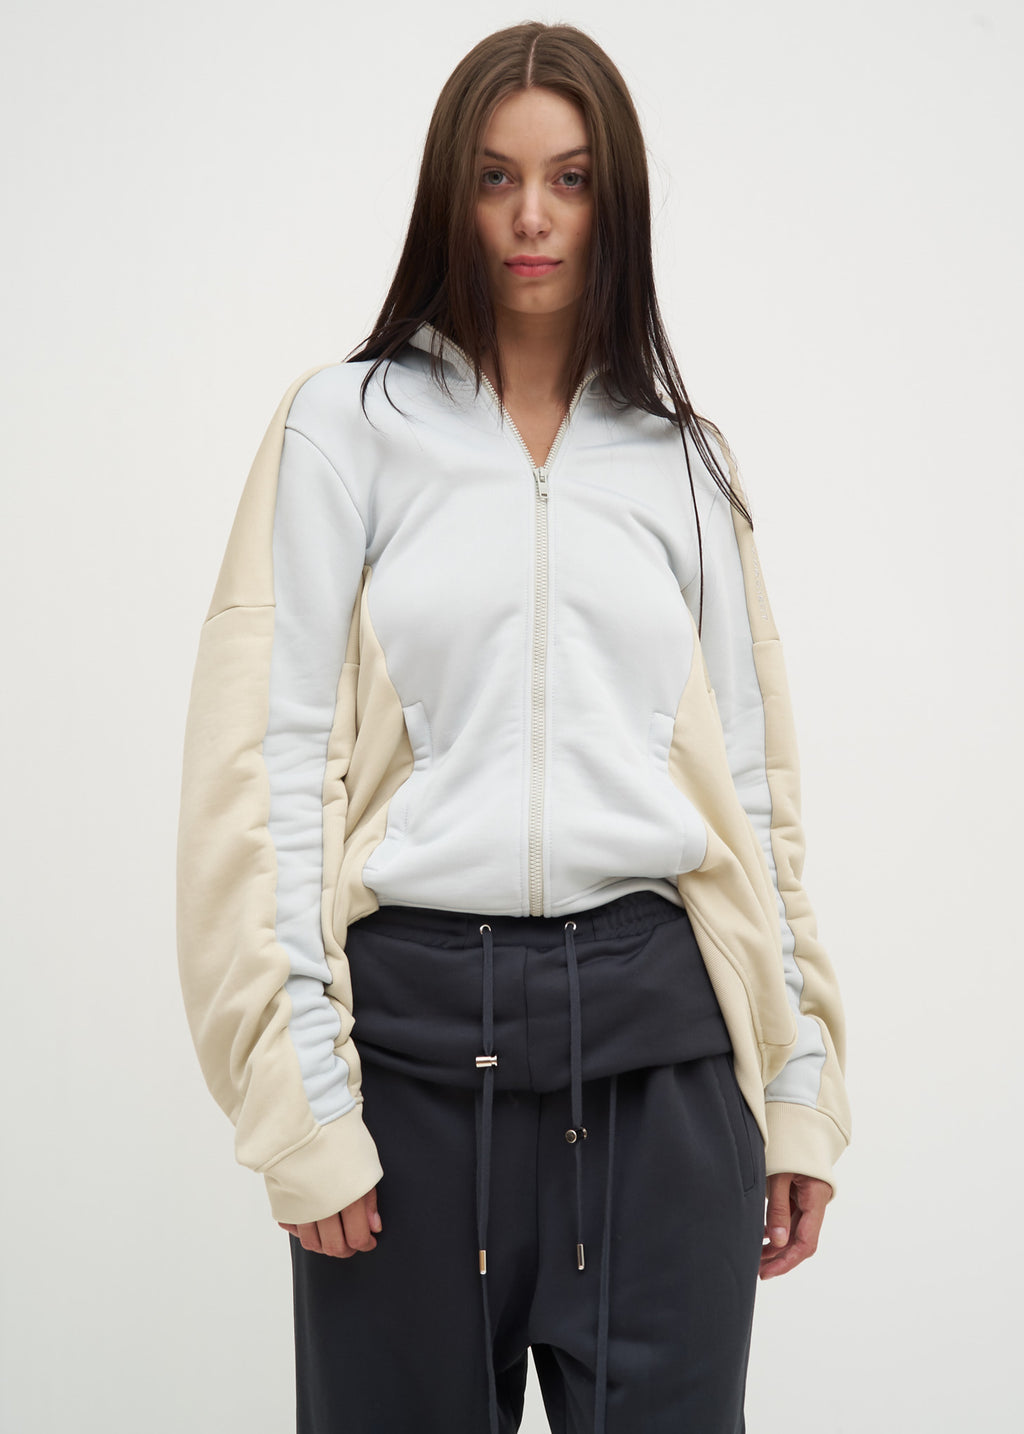 Y/Project, Biscotti Skinny Jacket, 017 Shop